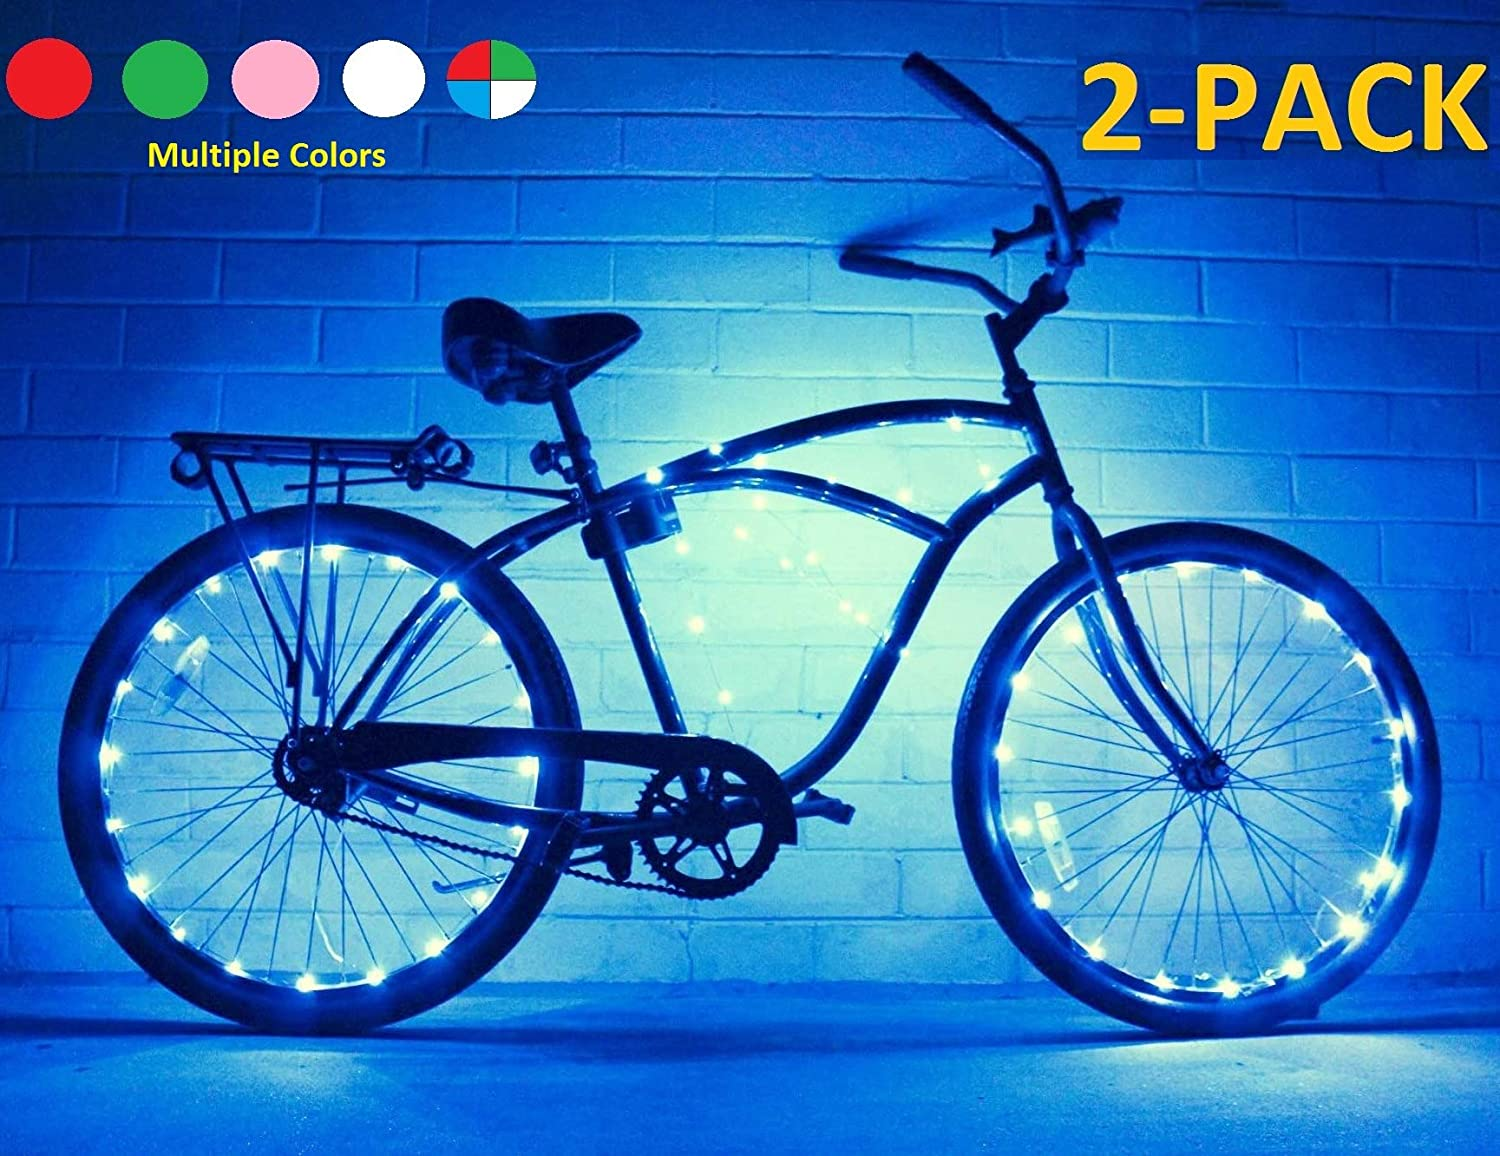 Bike Wheel Lights 2 PACK – Colorful Light Accessory For Bike – Perfect For Burning Man Festivals Blue